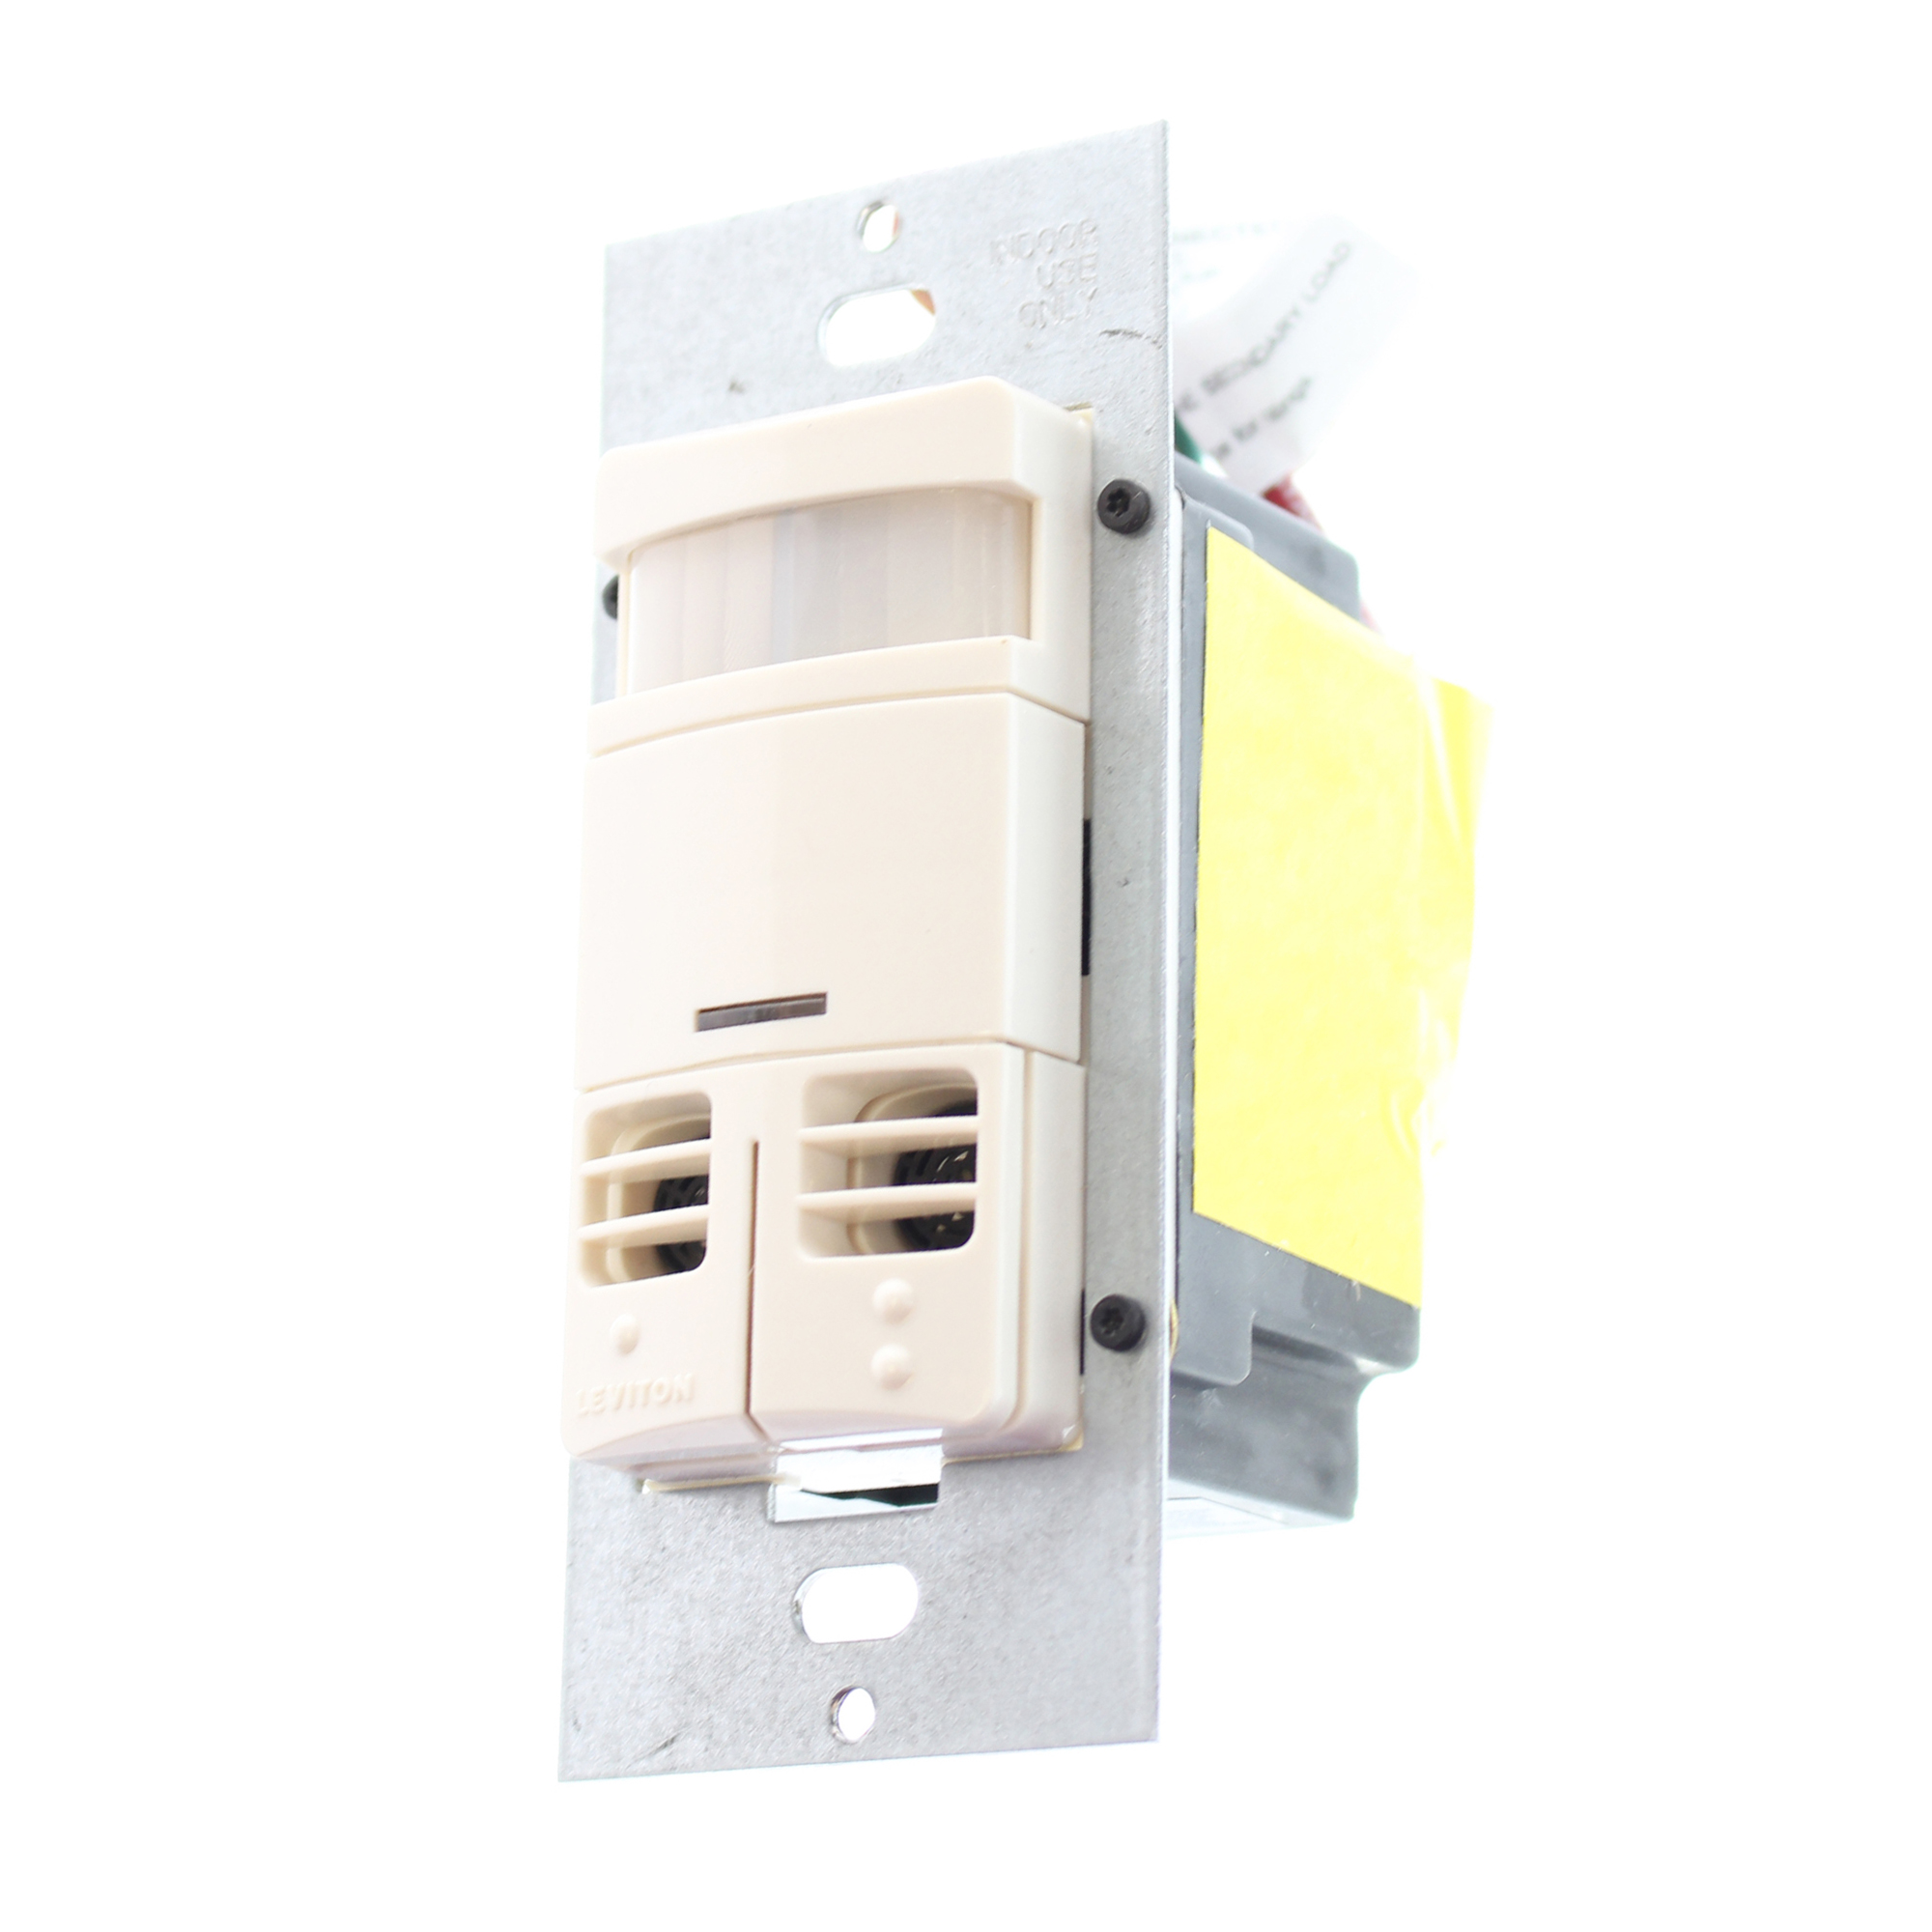 Leviton Ossmd-mdt Dual-relay Multi-technology Wall Switch Sensor ...